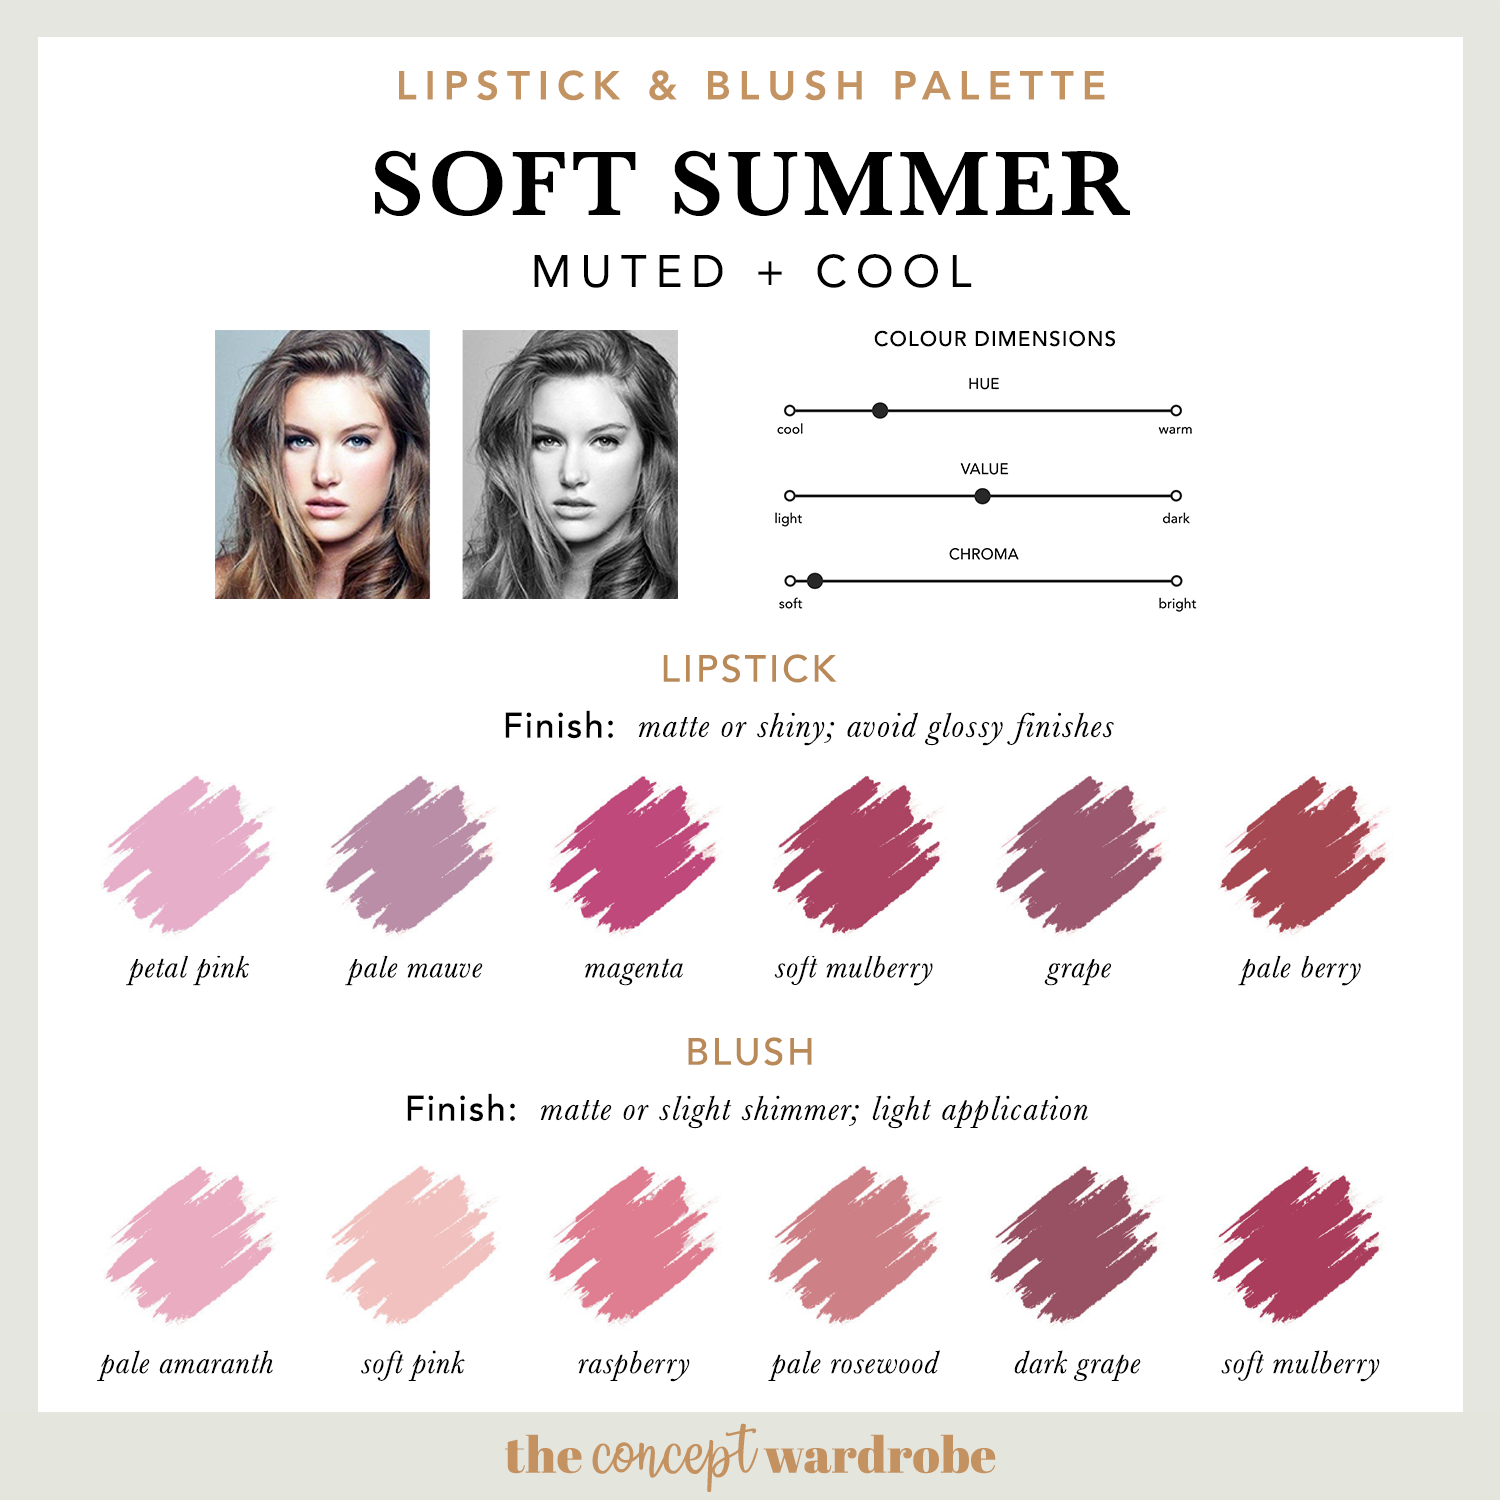 Soft Summer Lipstick Blush Palette Soft Summer Colors Soft Summer Palette Soft Summer